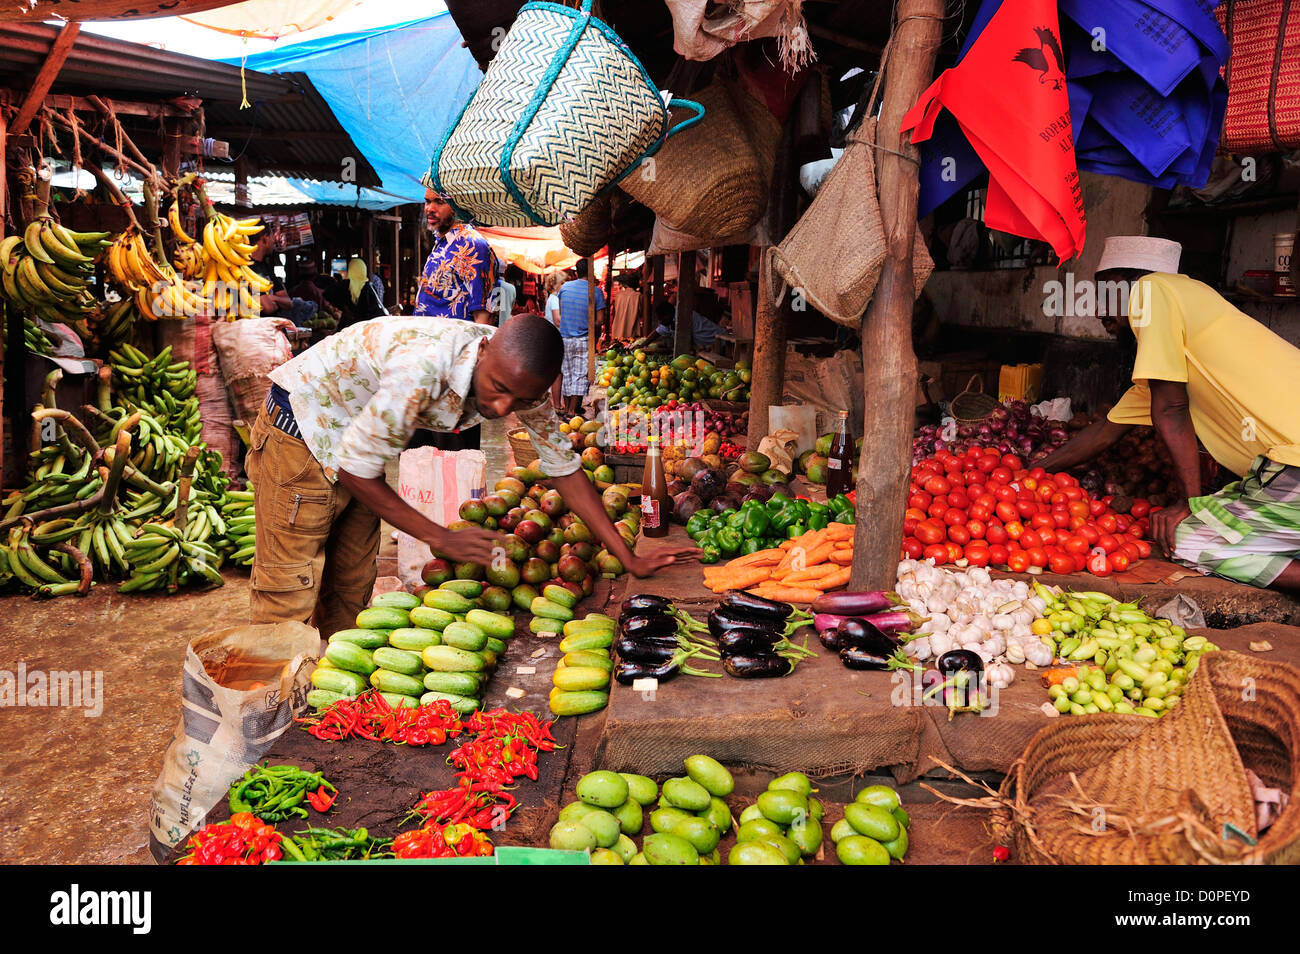 Fruit and vegetable market in Stone Town, Zanzibar, Tanzania, East Africa - Stock Image